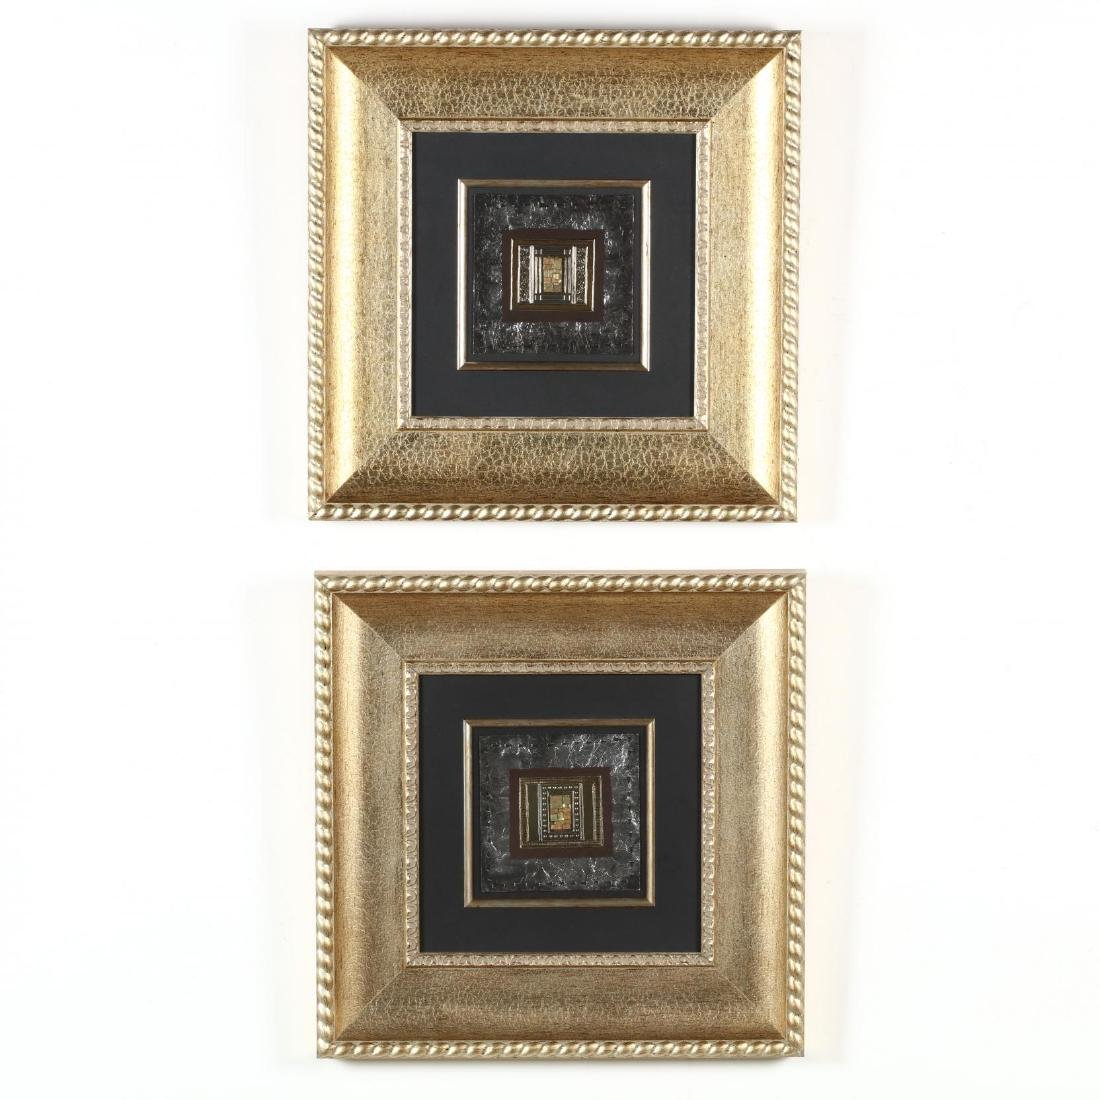 Kate Weston (TX), Pair of Framed Metal Collages